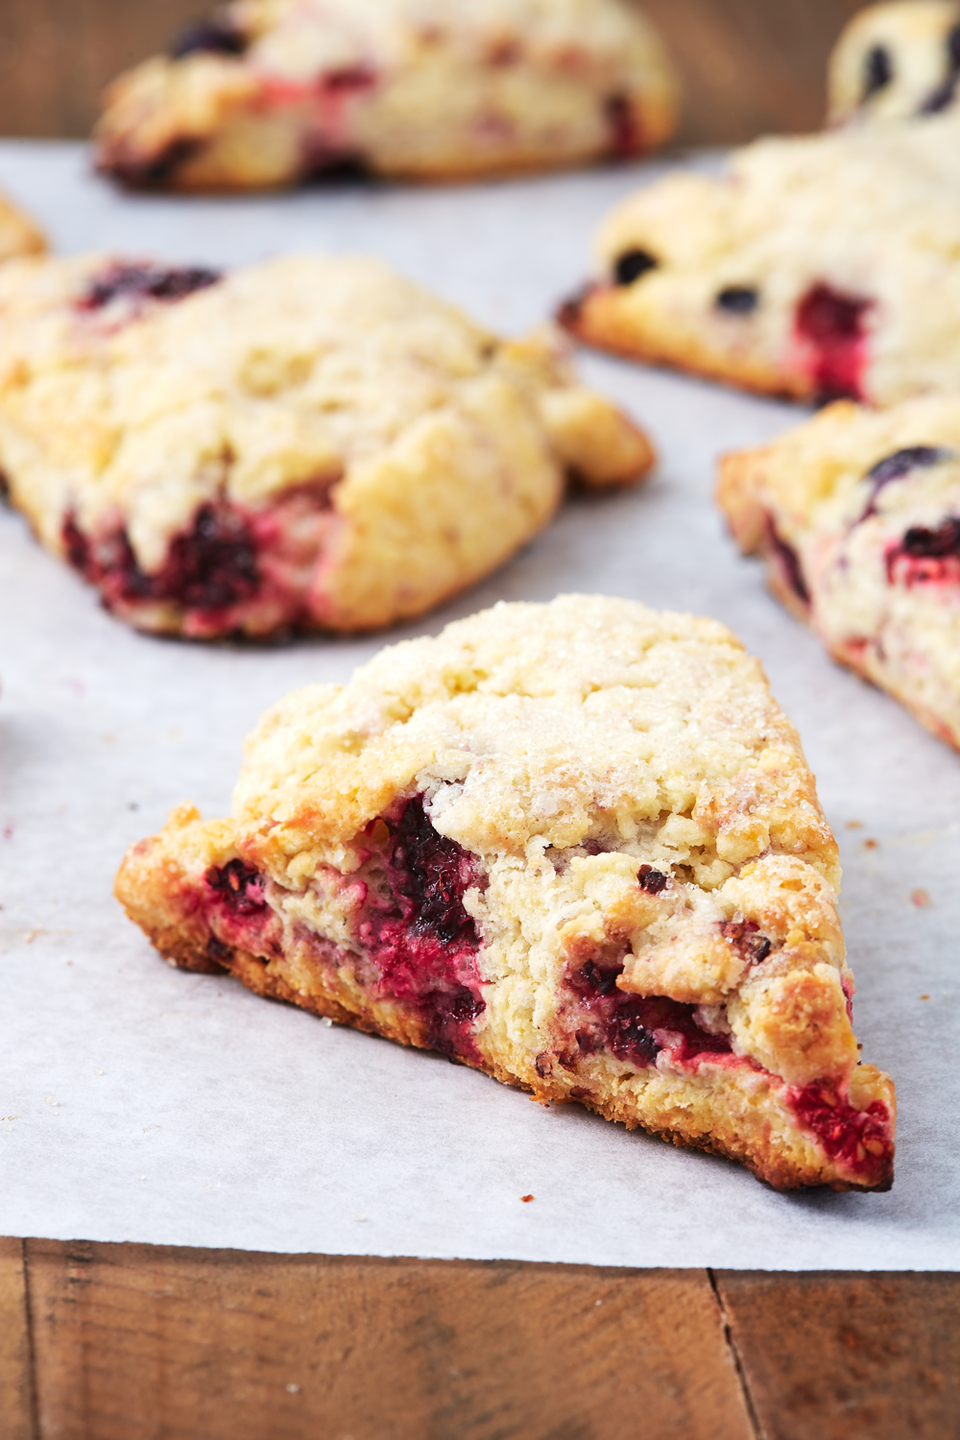 """<p>They've got raspberries, blackberries, AND blueberries.</p><p>Get the recipe from <a href=""""https://www.delish.com/cooking/recipe-ideas/a26830228/fruit-scones-recipe/"""" rel=""""nofollow noopener"""" target=""""_blank"""" data-ylk=""""slk:Delish"""" class=""""link rapid-noclick-resp"""">Delish</a>.</p>"""